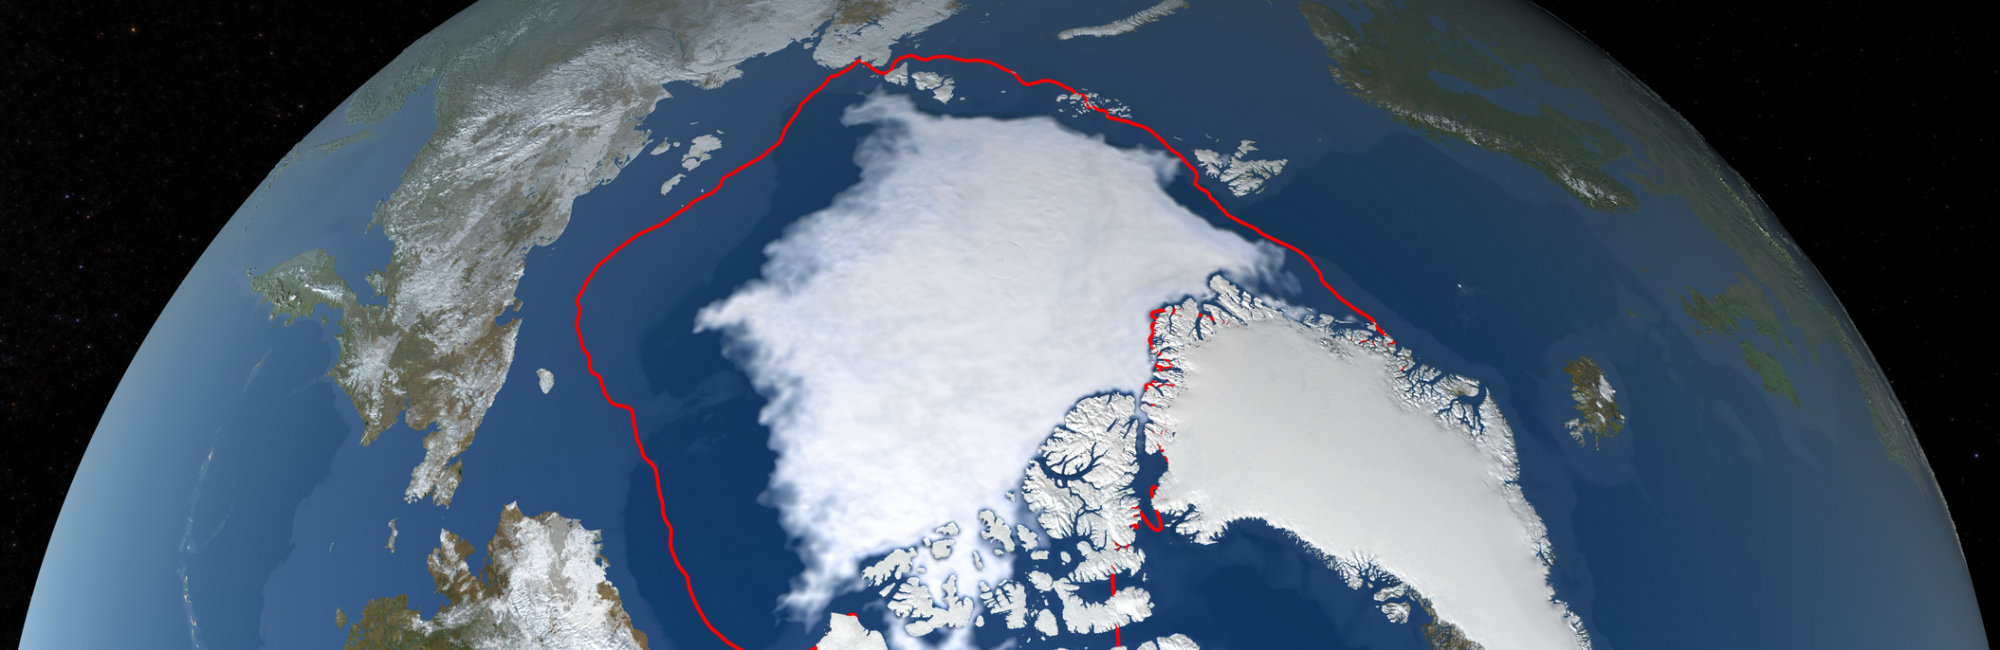 Northern pole showing lesser sea ice extent than previous years.